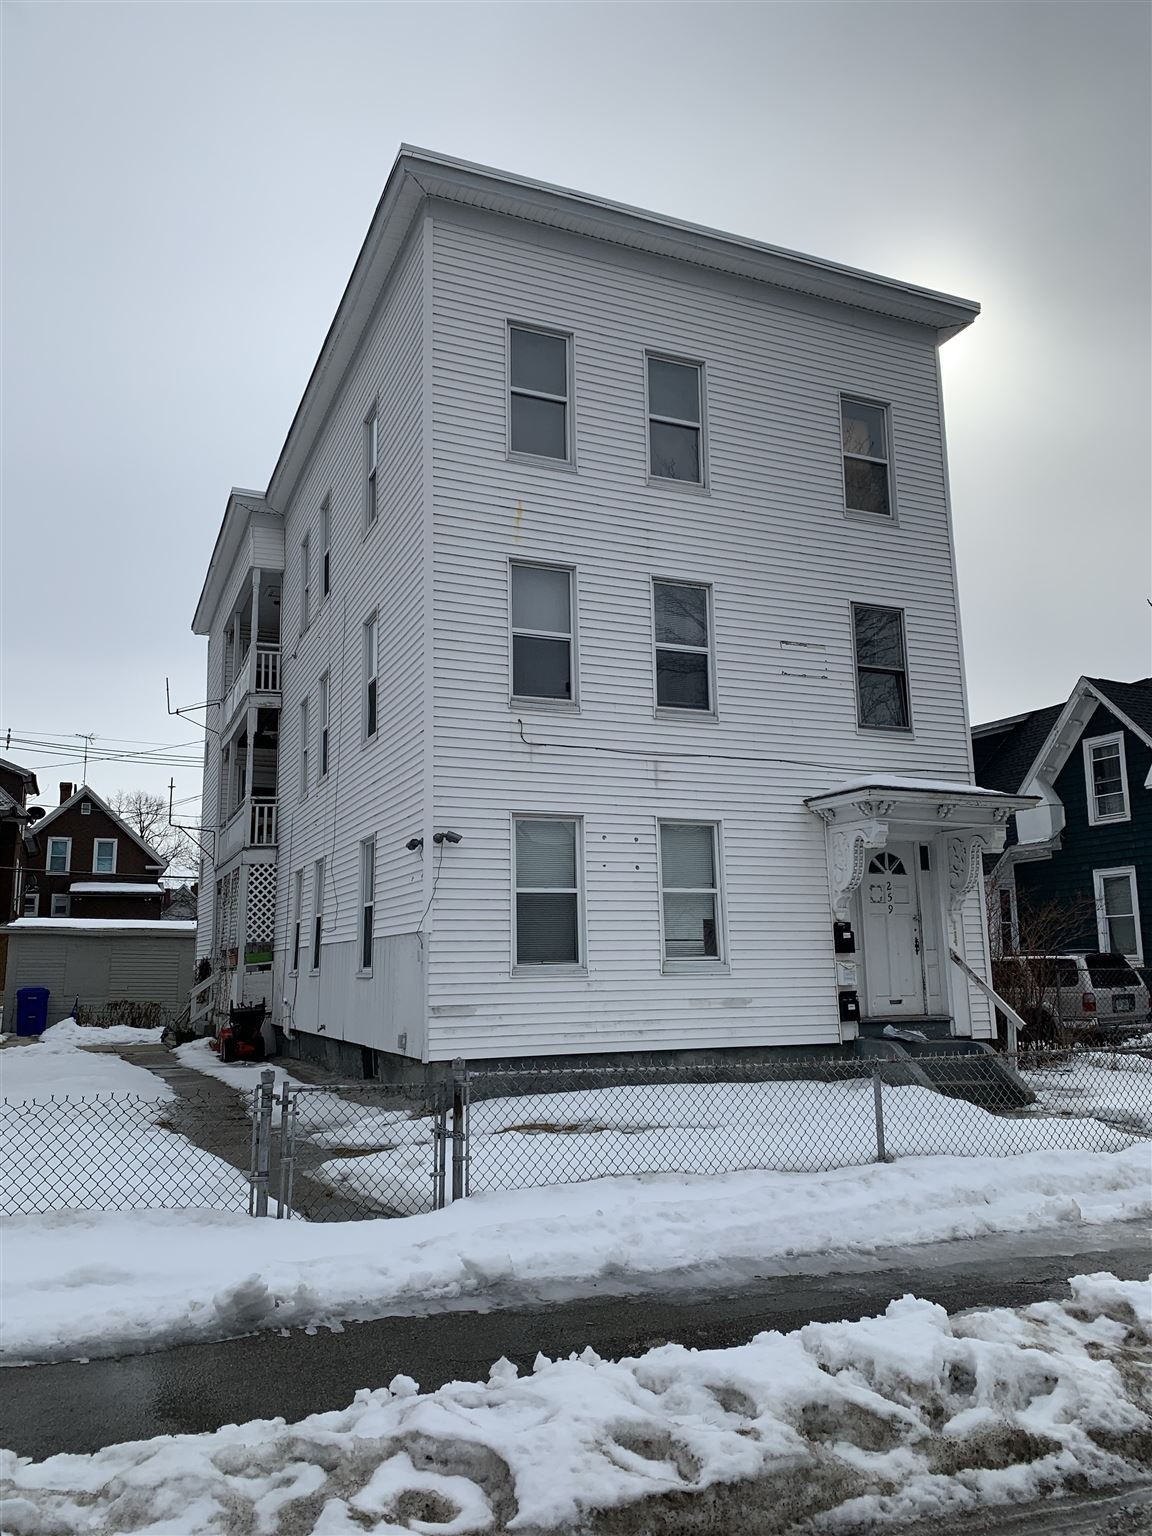 259 Spruce Street, Manchester, NH 03103 - MLS#: 4848809